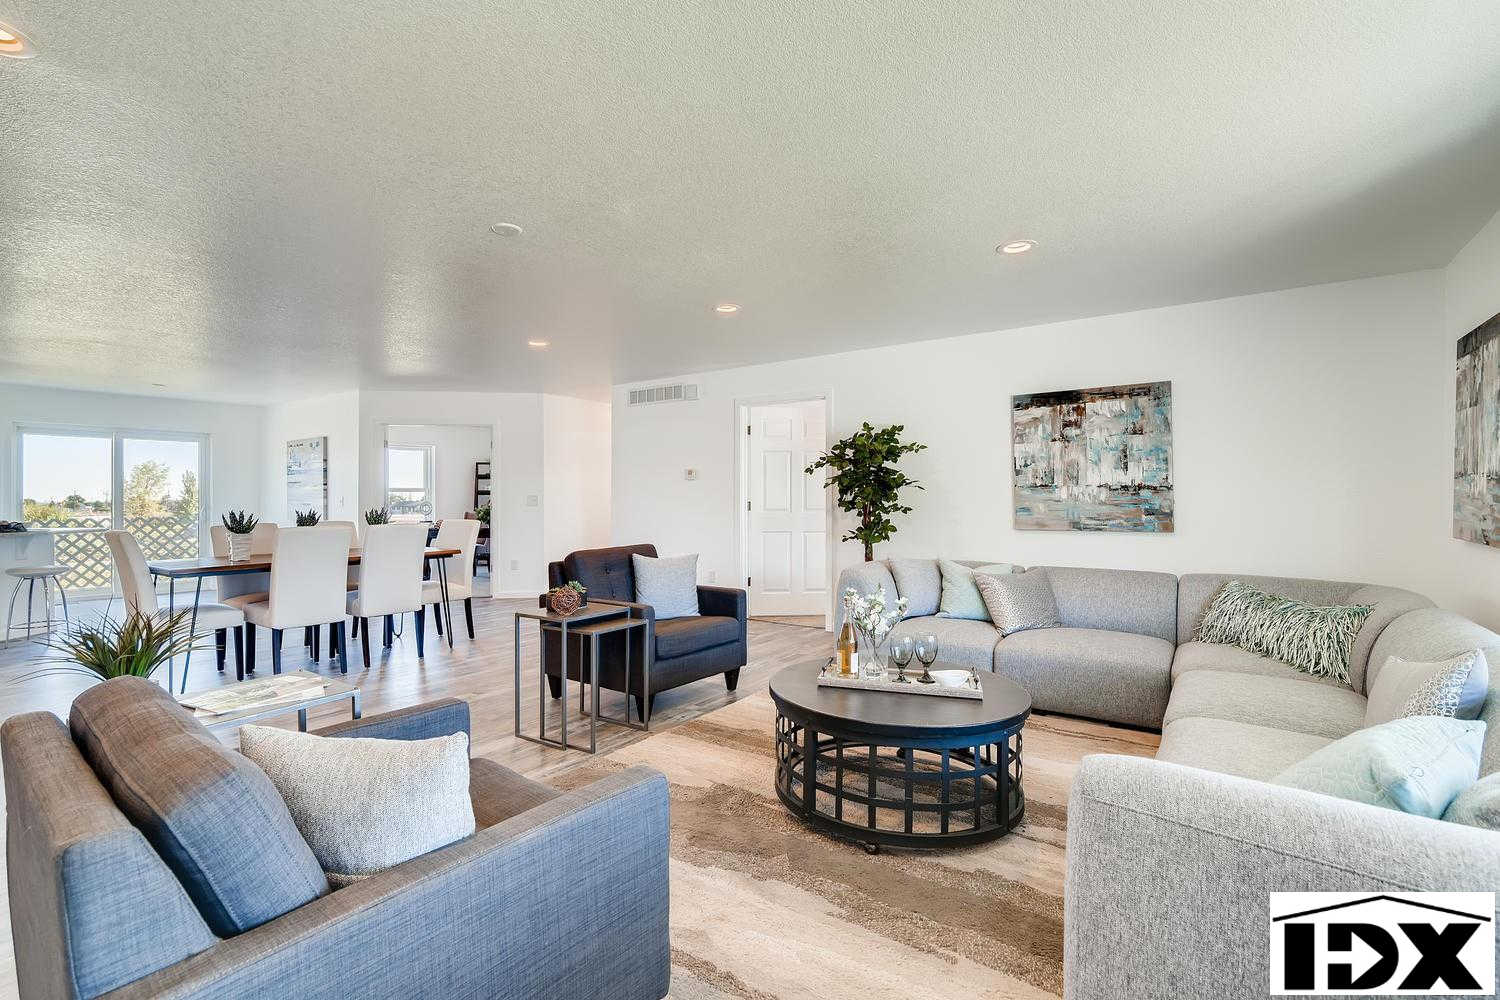 1403 Crestridge Drive, Loveland, CO 80537 now has a new price of $560,000!